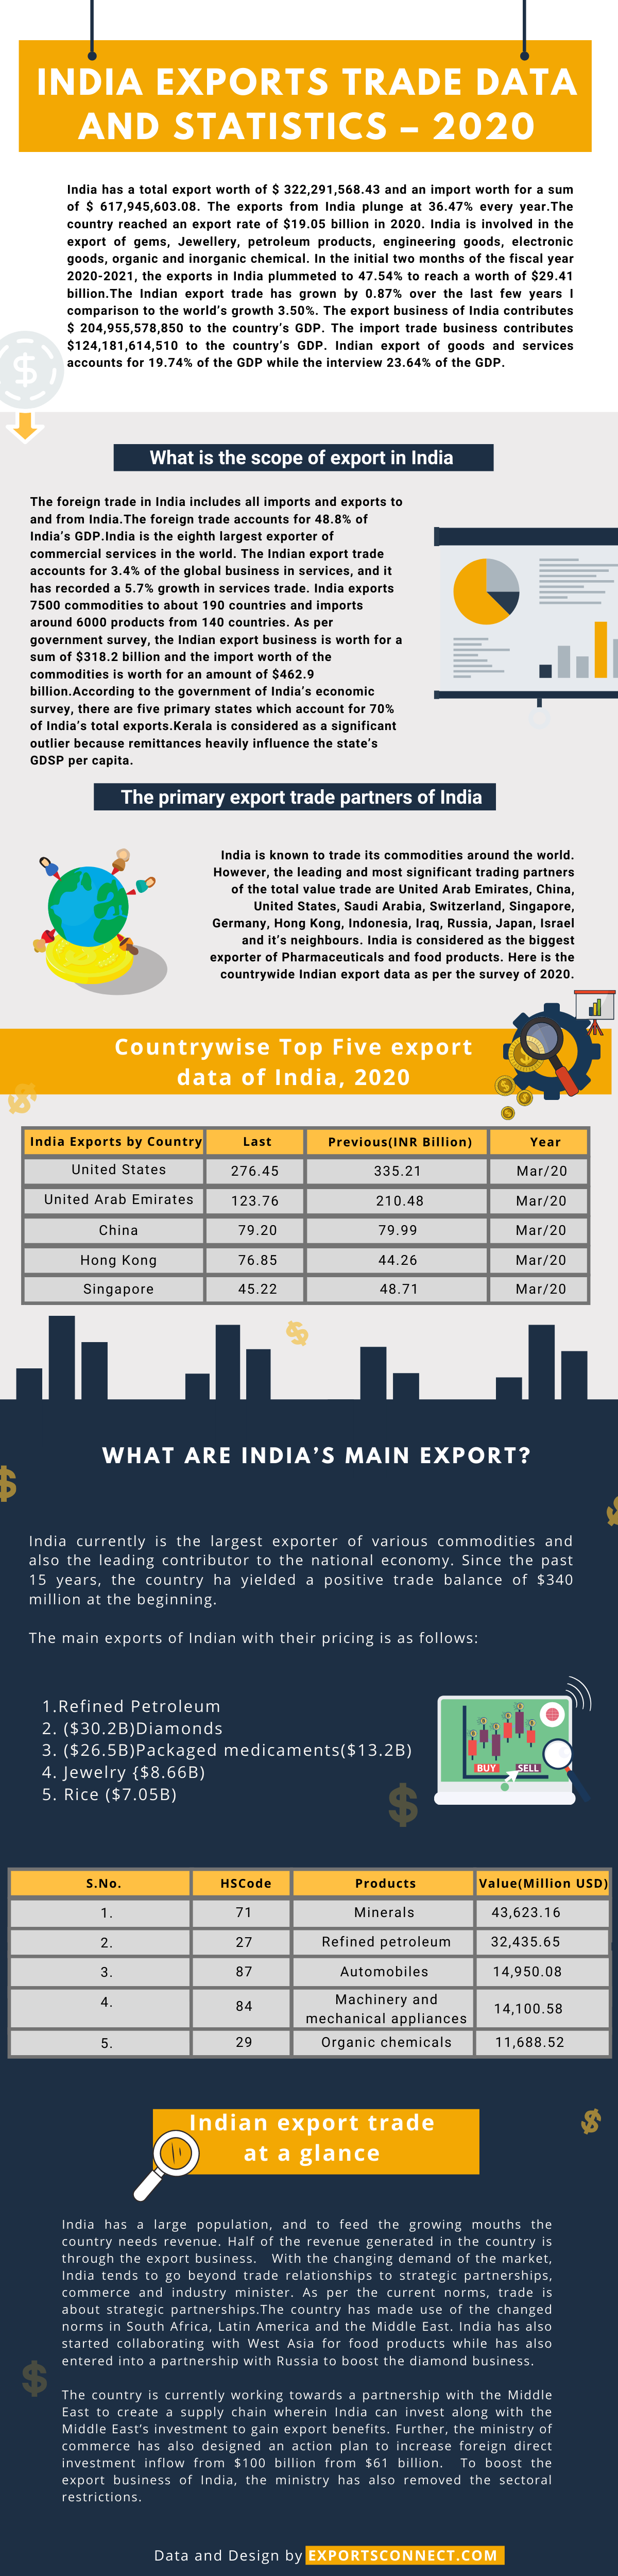 India Exports Trade Data and Statistics 2020